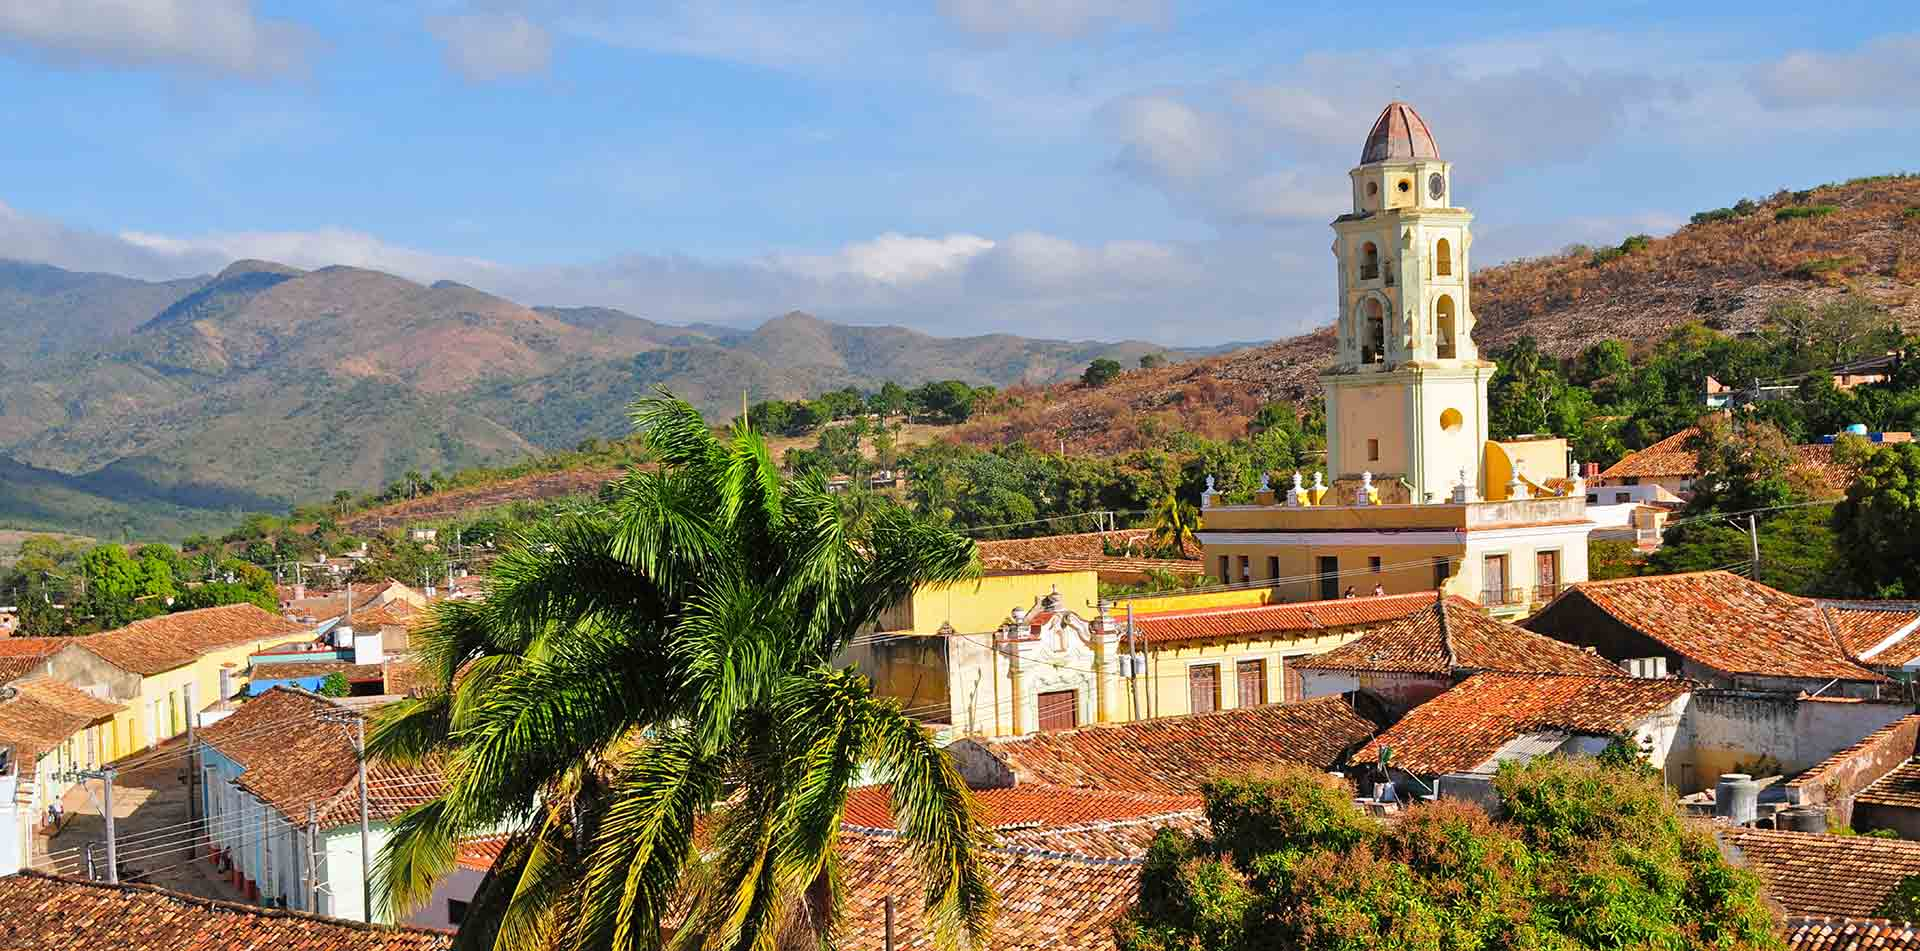 North America Caribbean Cuba Sancti Spiritus Trinidad Church and Monastery of Saint Francis - luxury vacation destinations